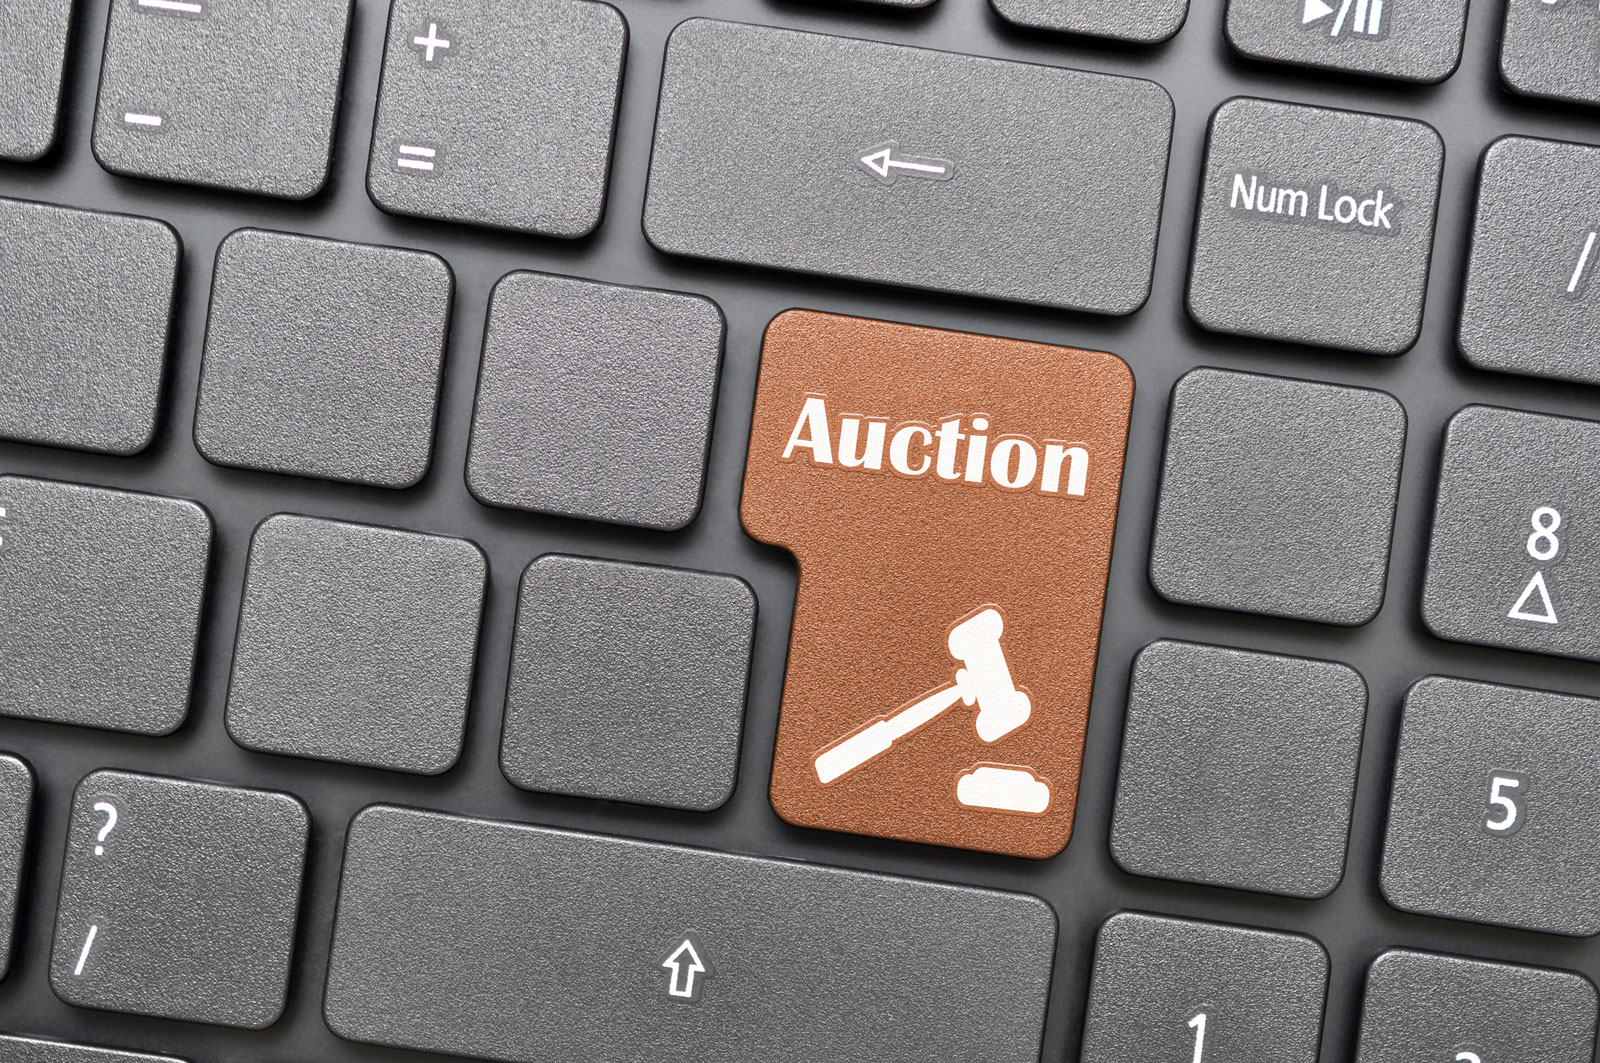 Keyboard Auction | GoDaddy Auctions: How To Buy & Sell The Right Domain